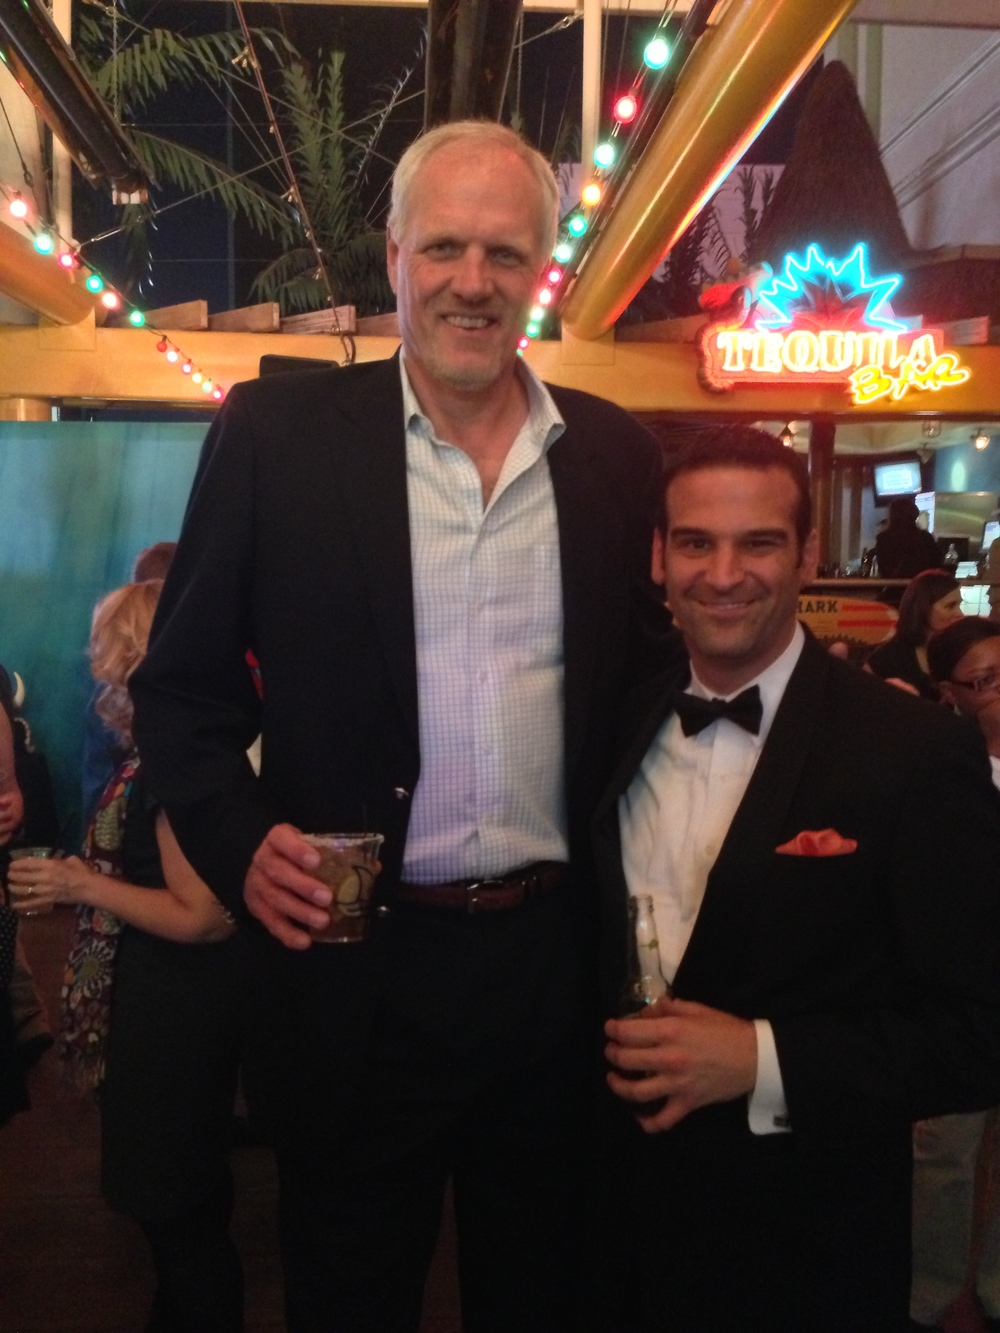 ...former NBA player Mark Eaton, 11/13